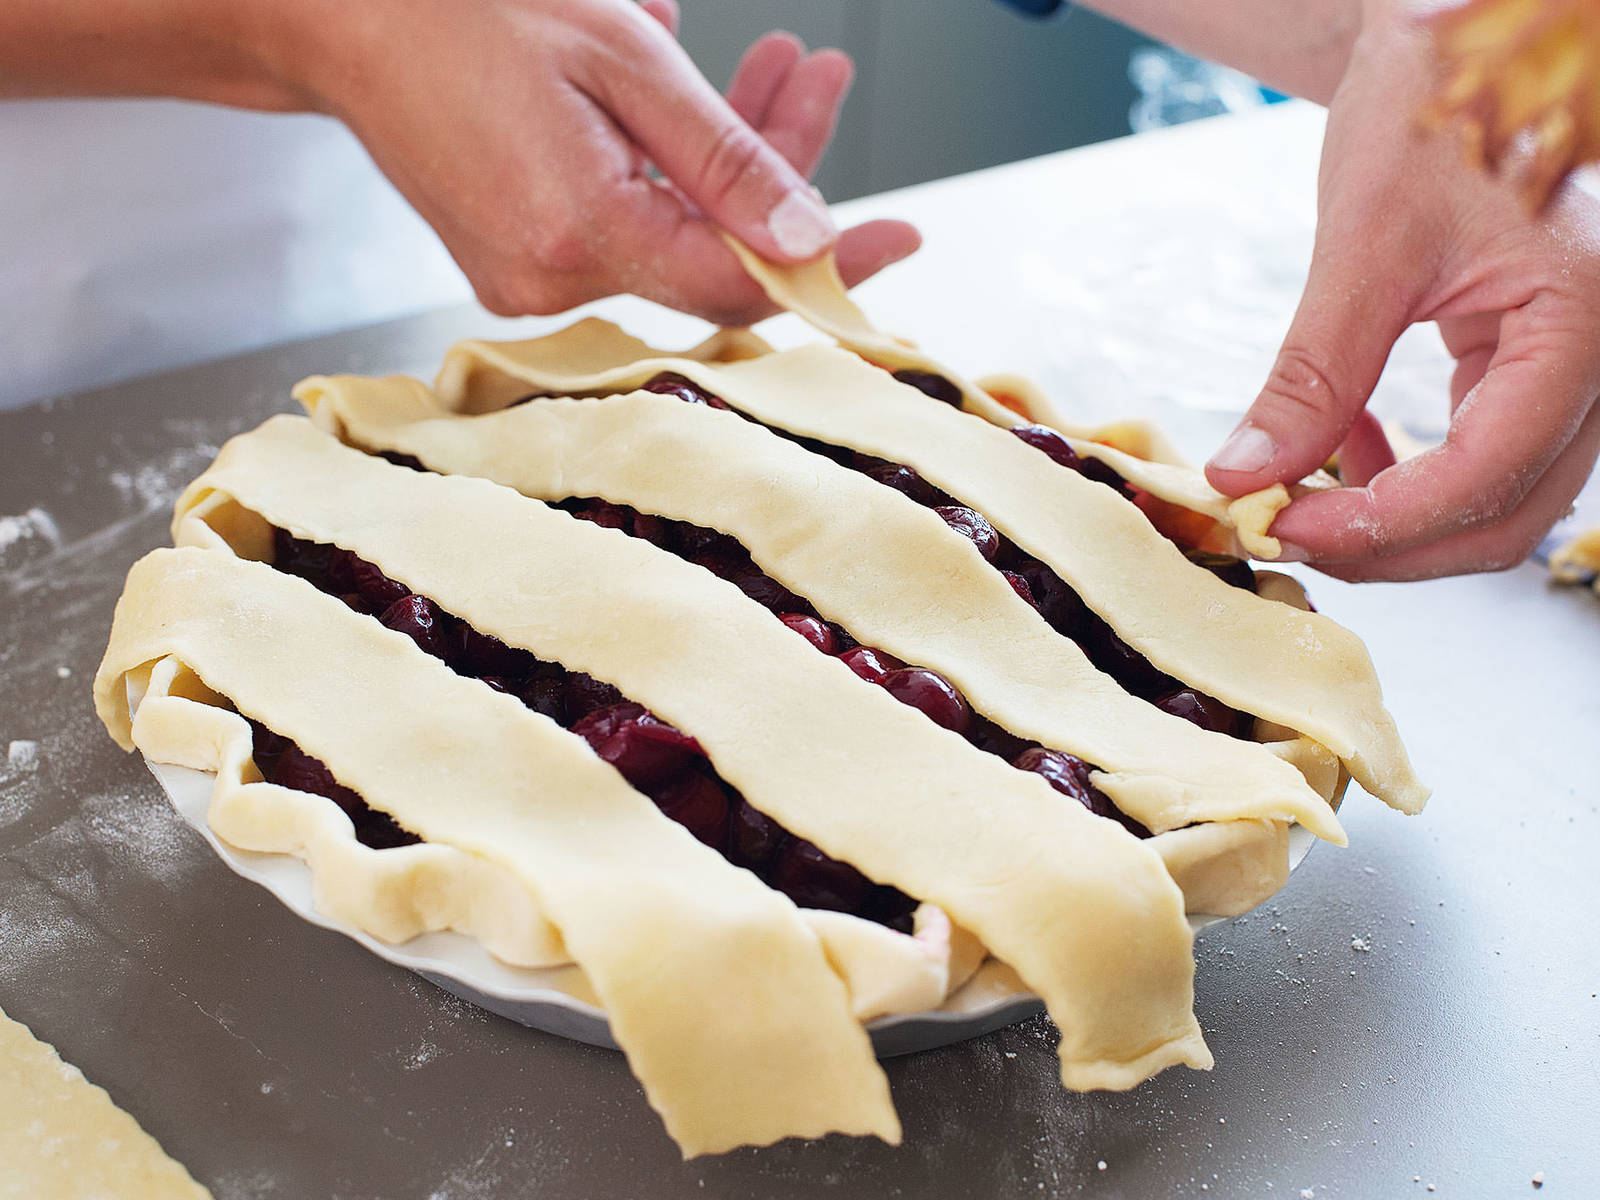 Roll second dough disk into a round of same thickness and cut into 1-in./2.5-cm wide strips. Use the strips to form a lattice pattern over the cherry filling.